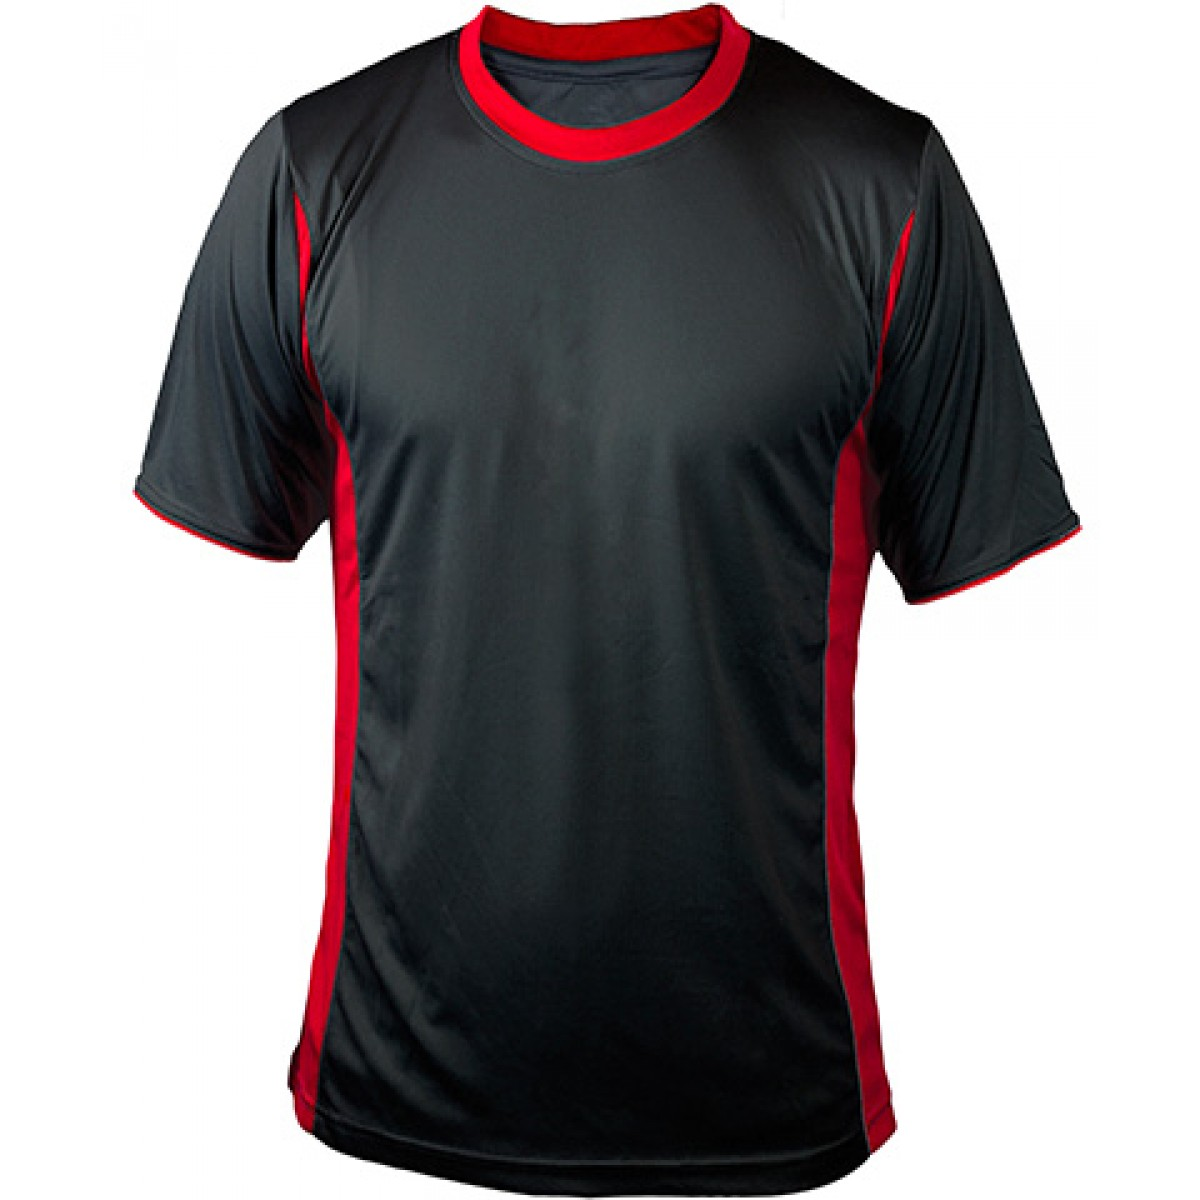 Black Short Sleeves Performance With Red Side Insert-Black-S